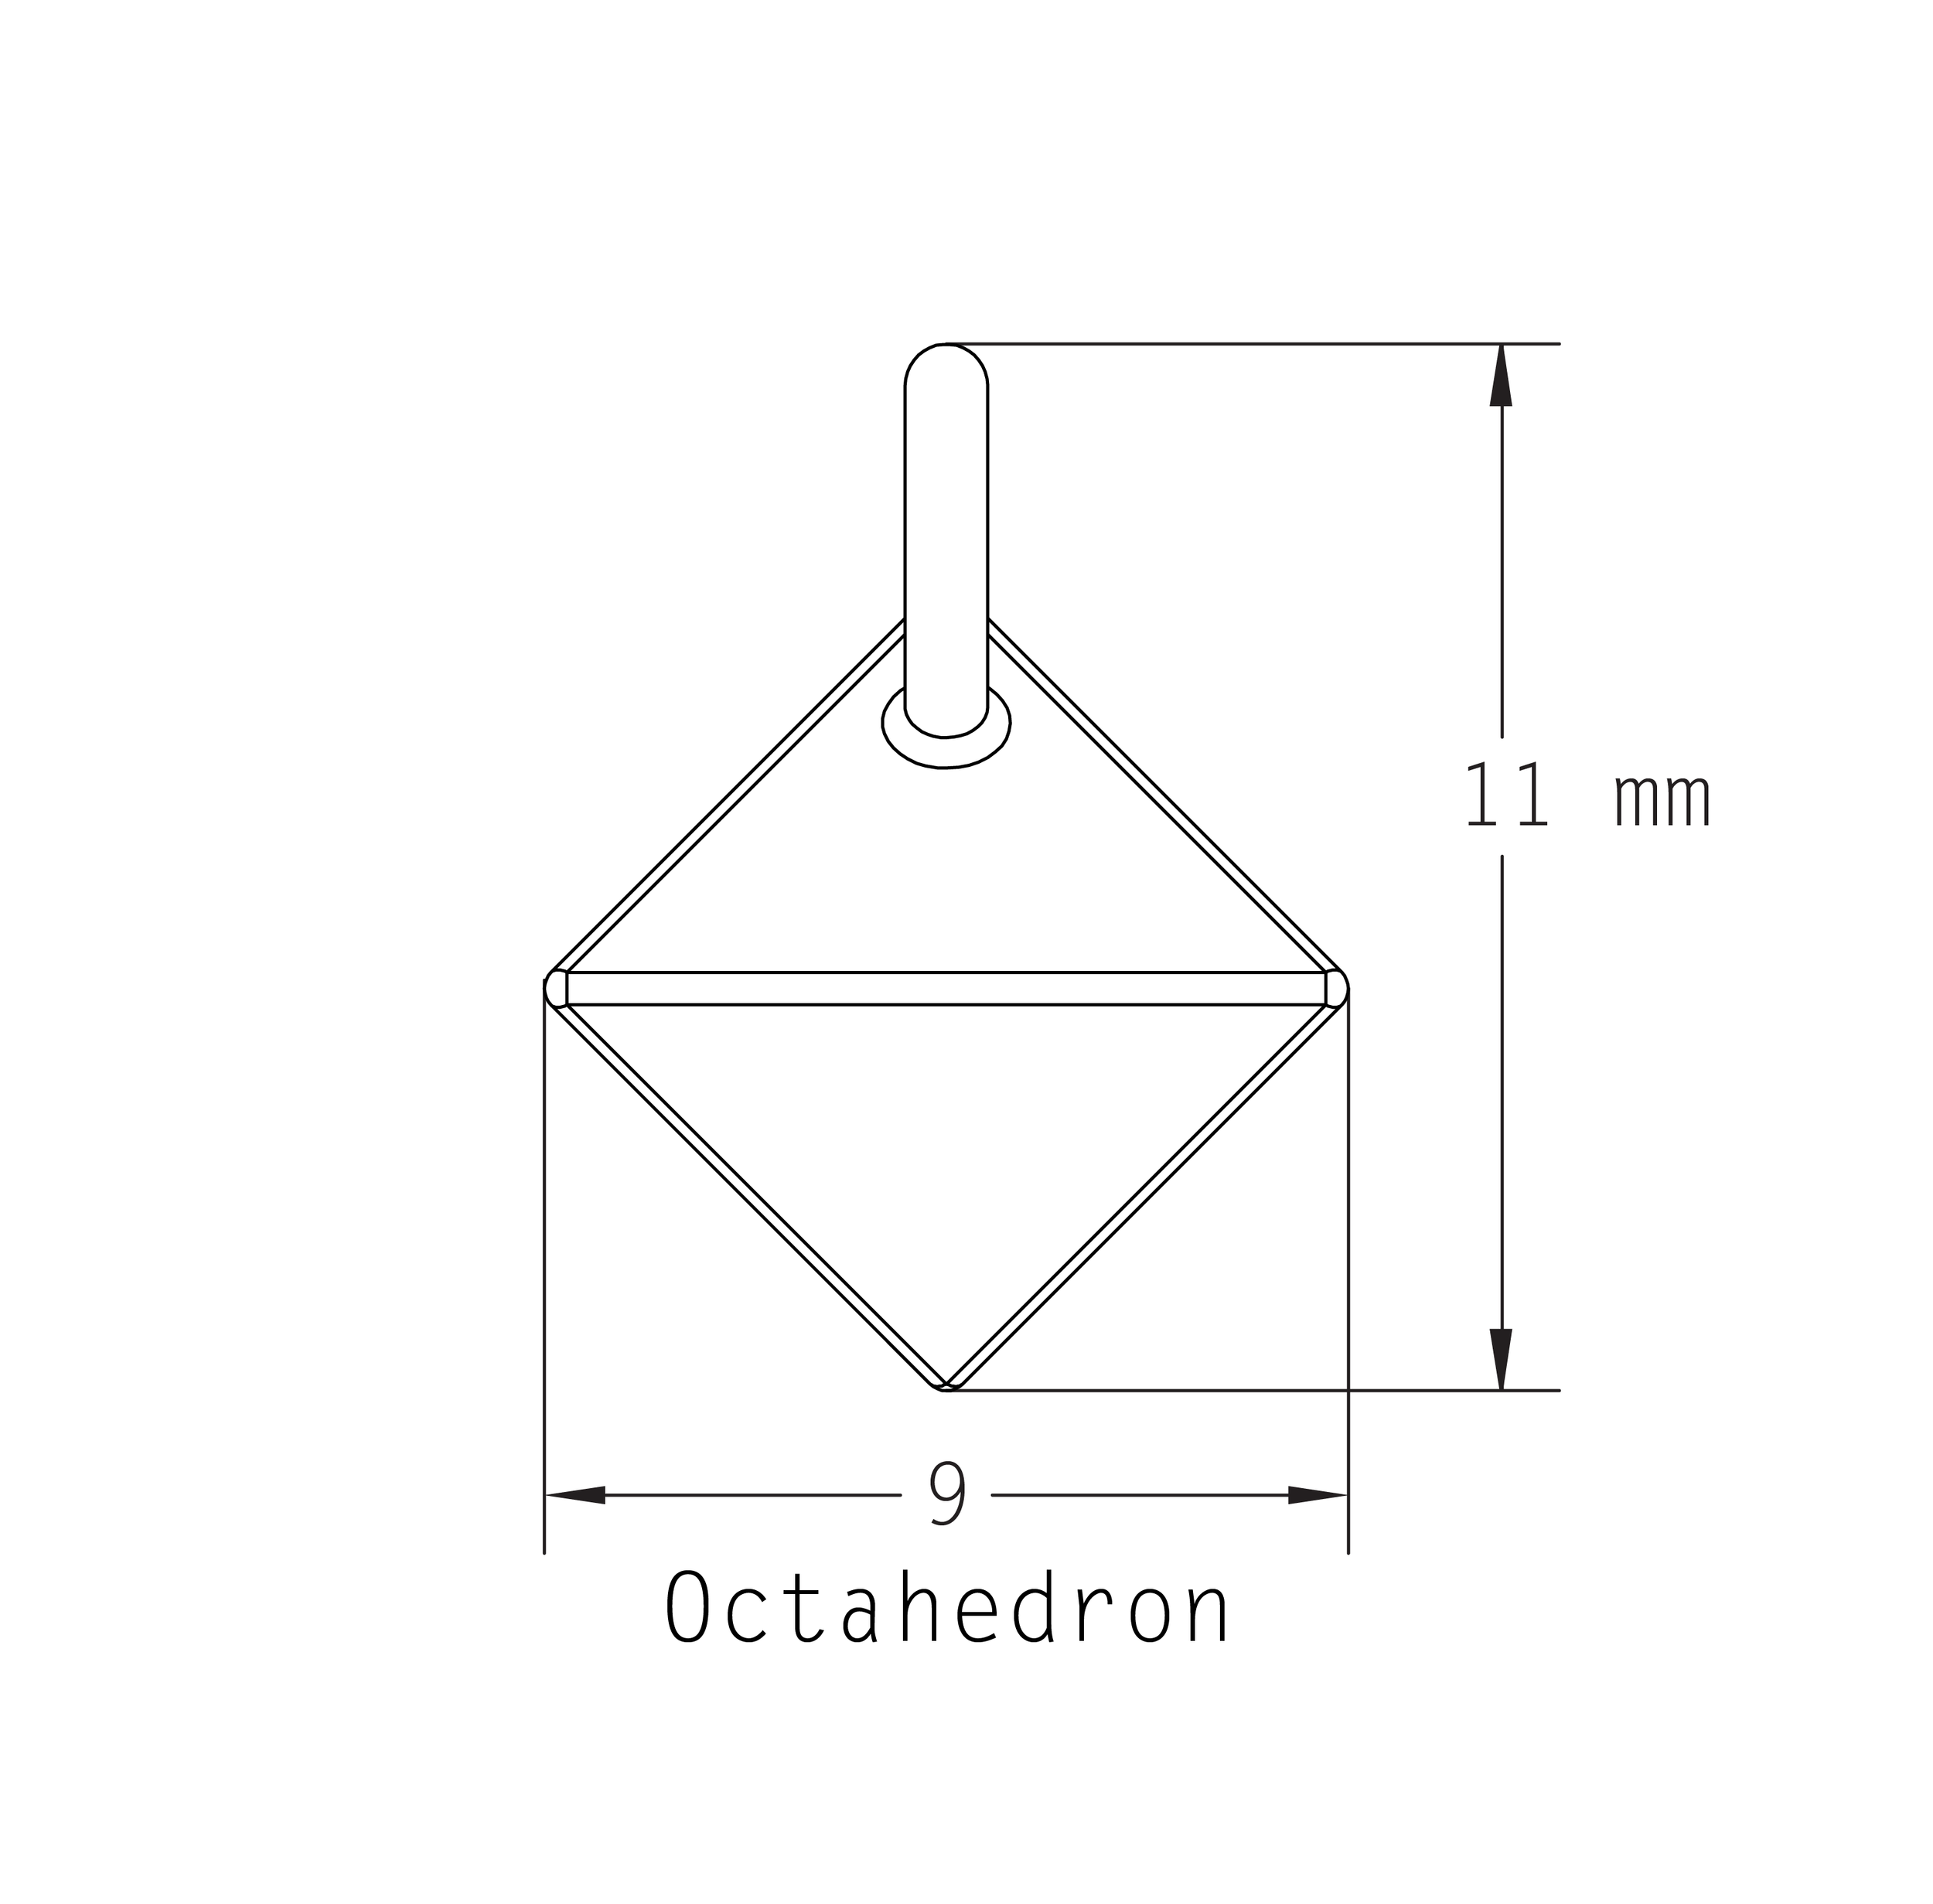 Octahedron_Scale Drawing-01.png